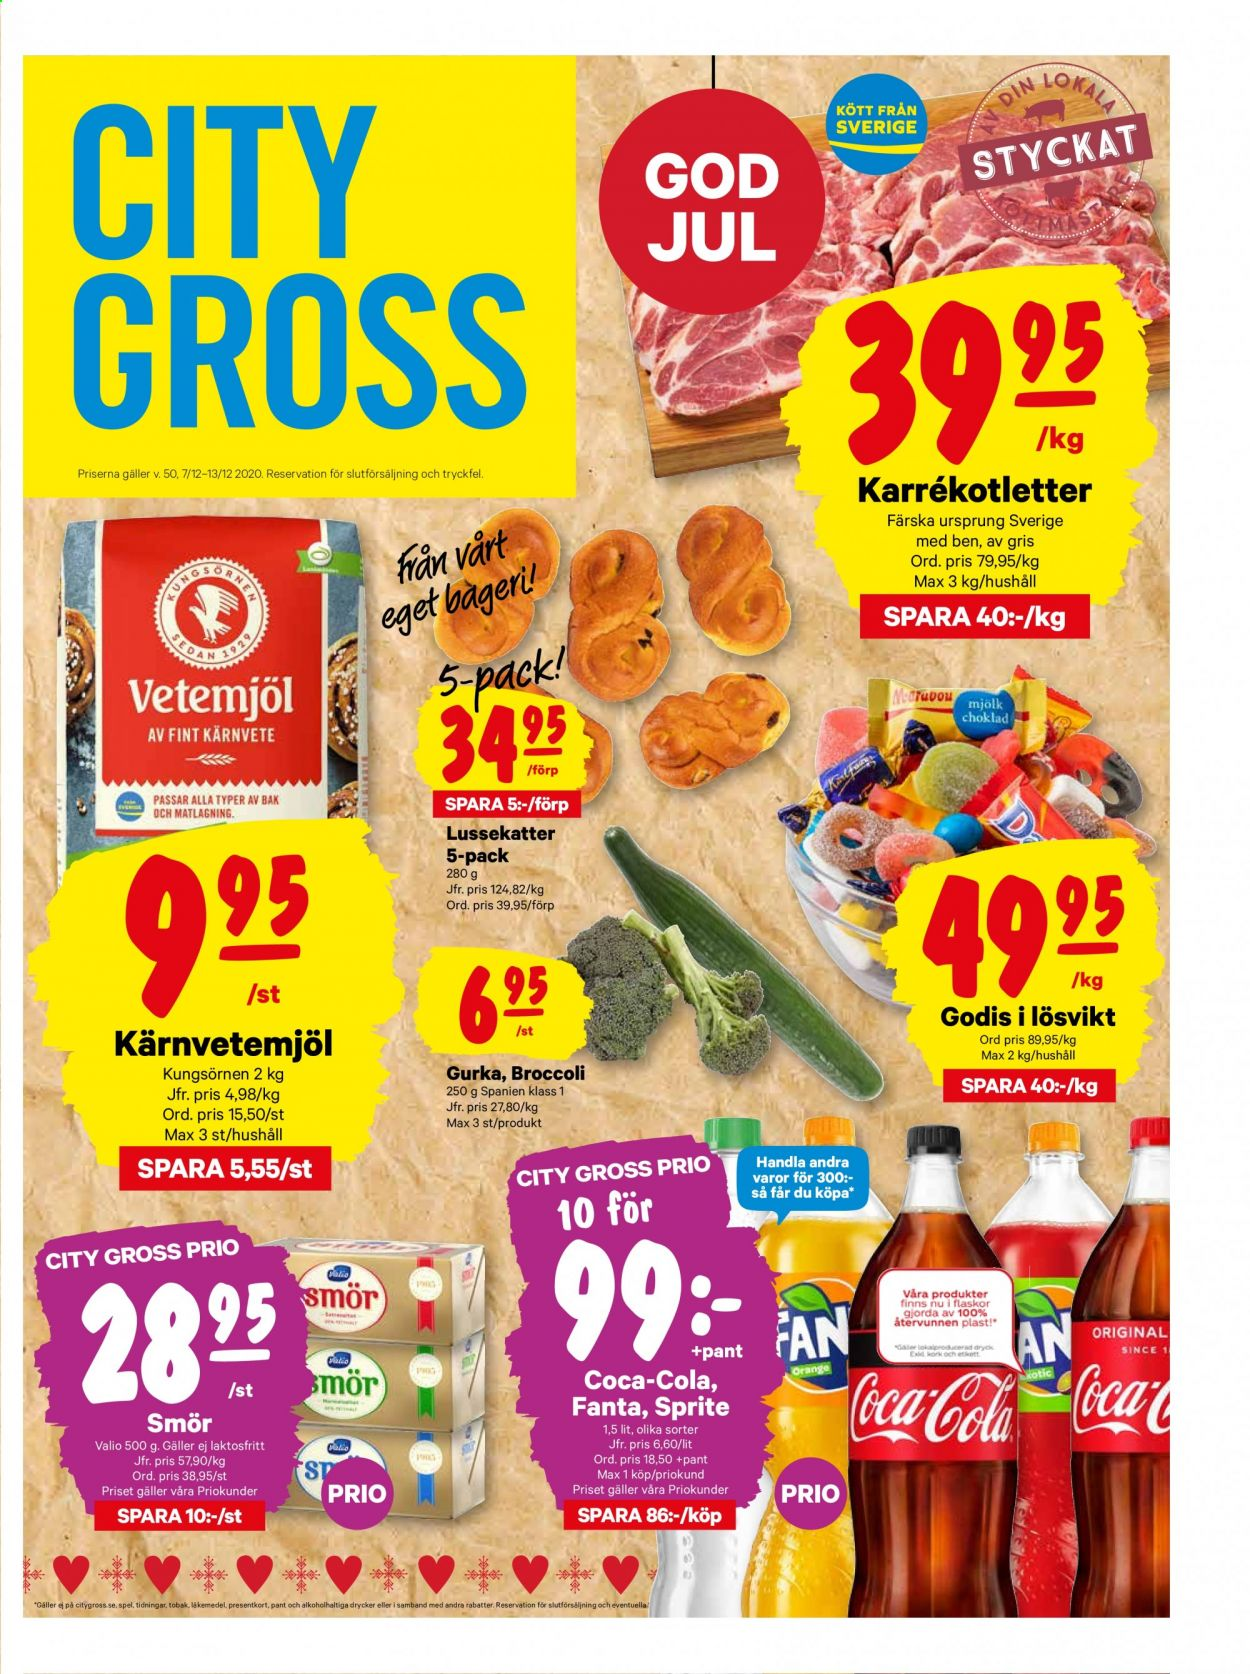 City Gross reklamblad - 7/12 2020 - 13/12 2020. Sida 1.